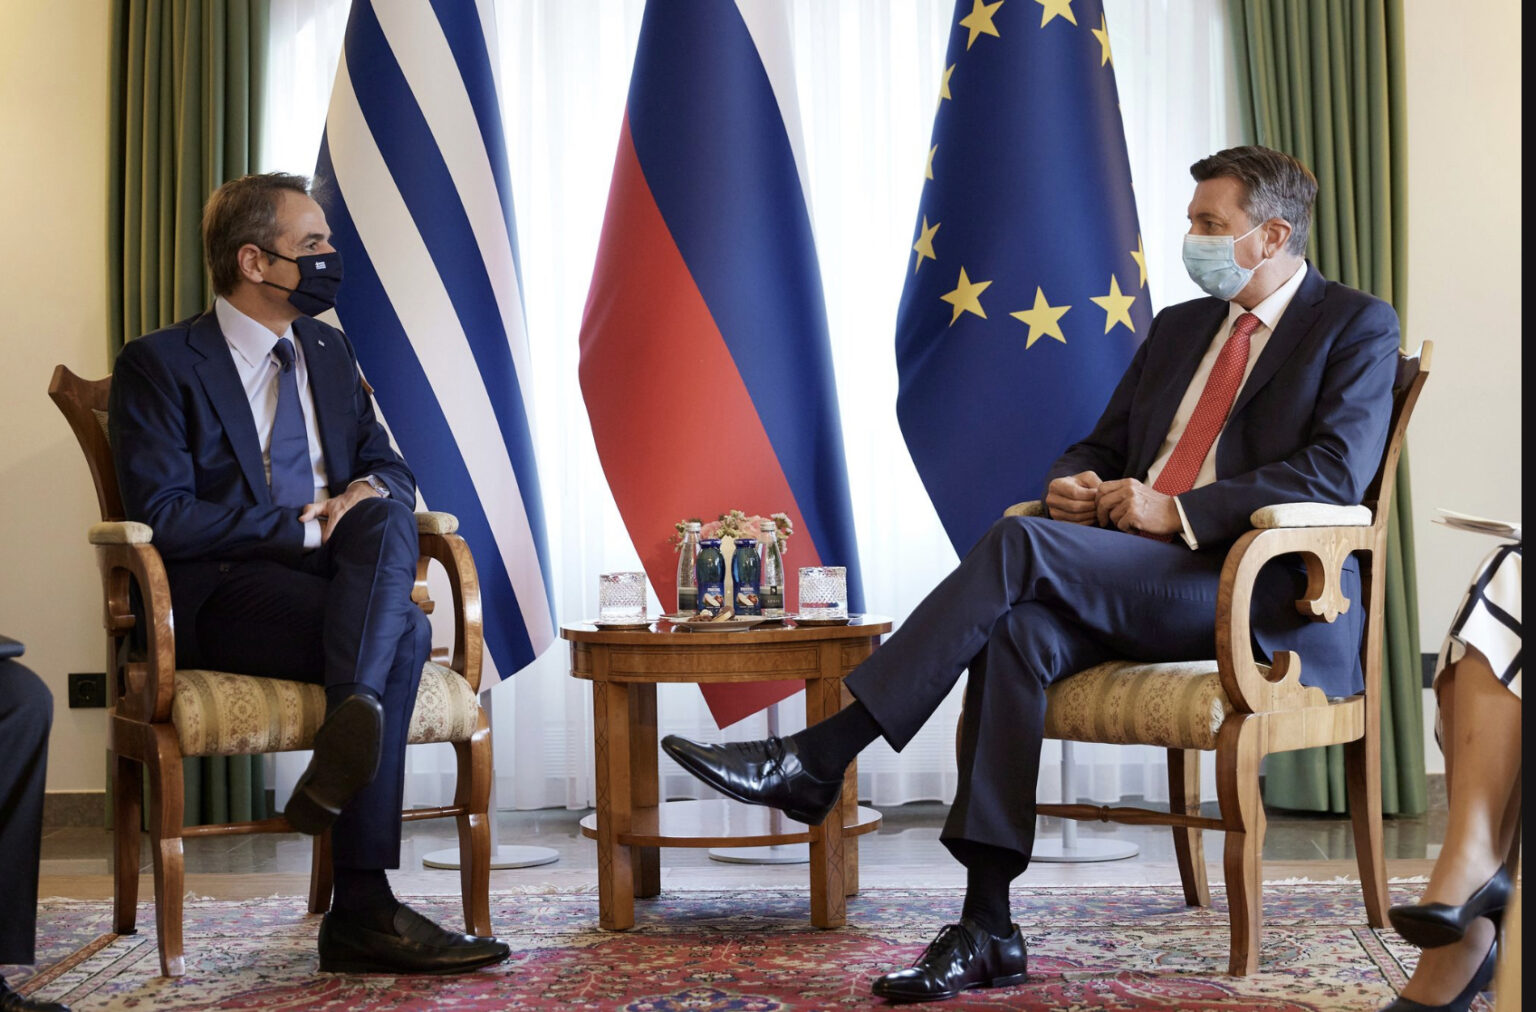 Greece: Mitsotakis met with Janša and Pahor